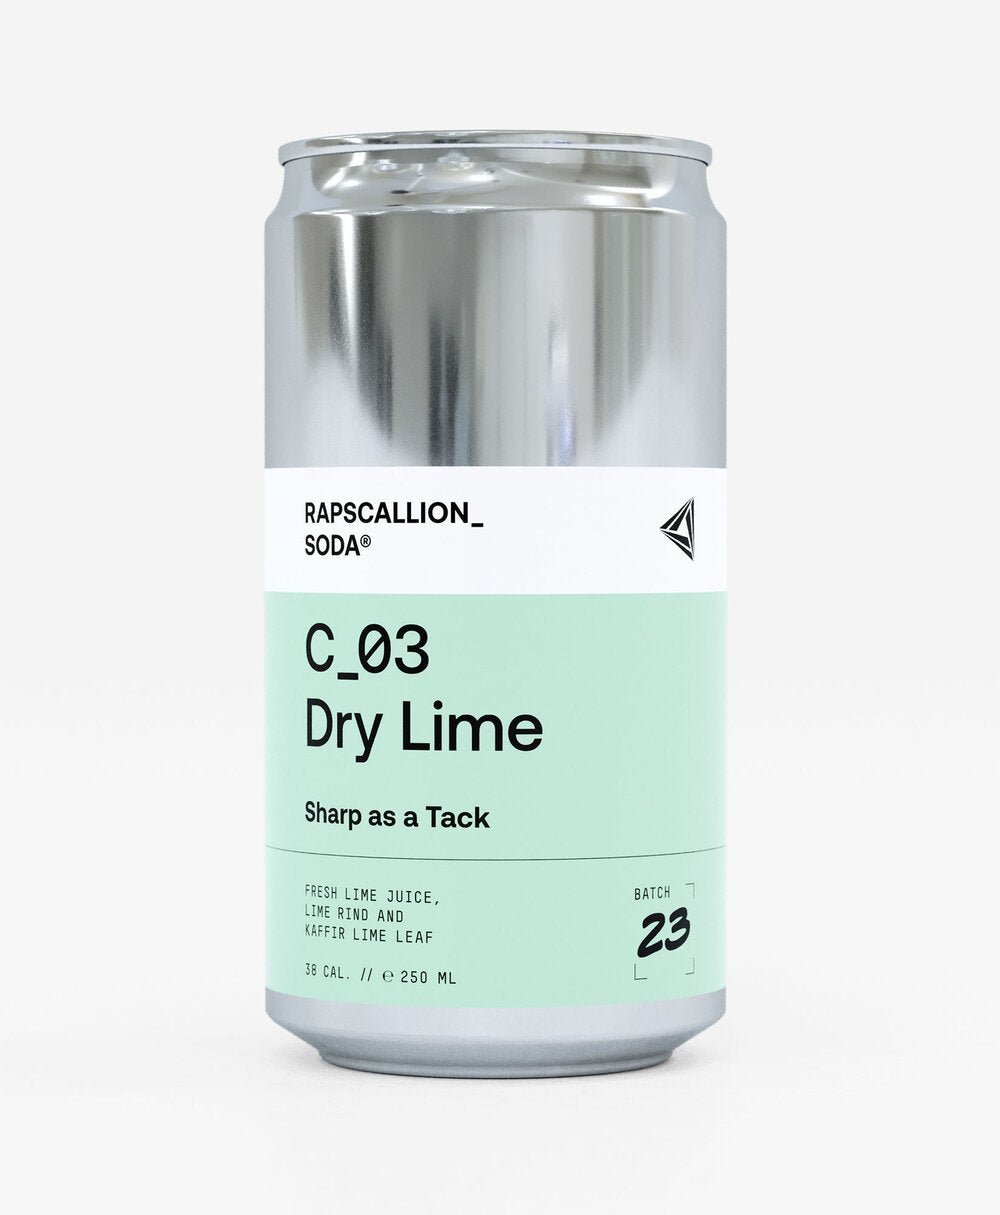 RAPSCALLION DRY LIME 250ML - Vino Wines